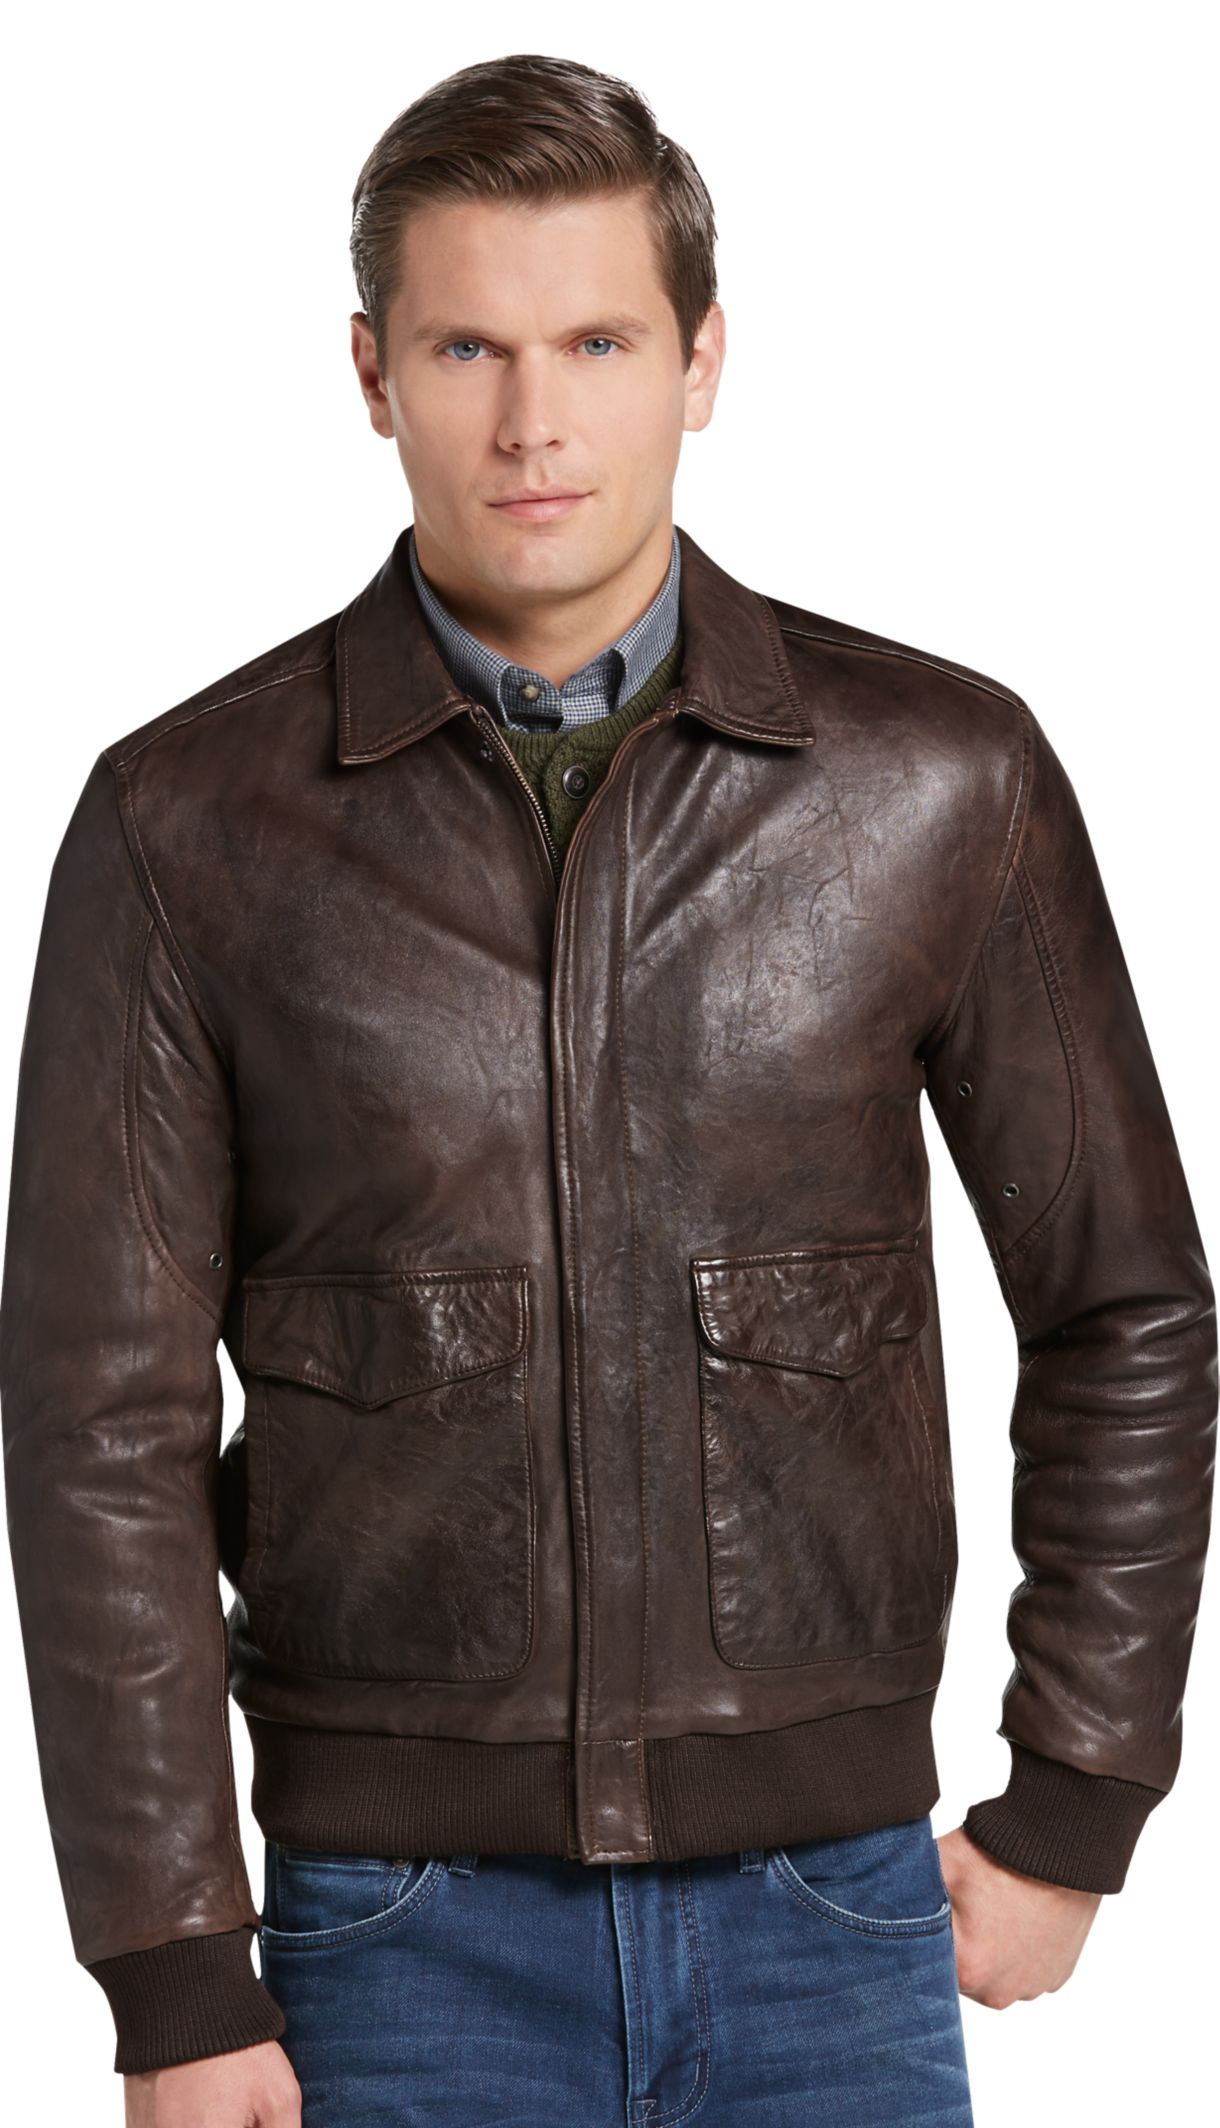 e71abf933 1905 Collection Tailored Fit Leather Bomber Jacket CLEARANCE